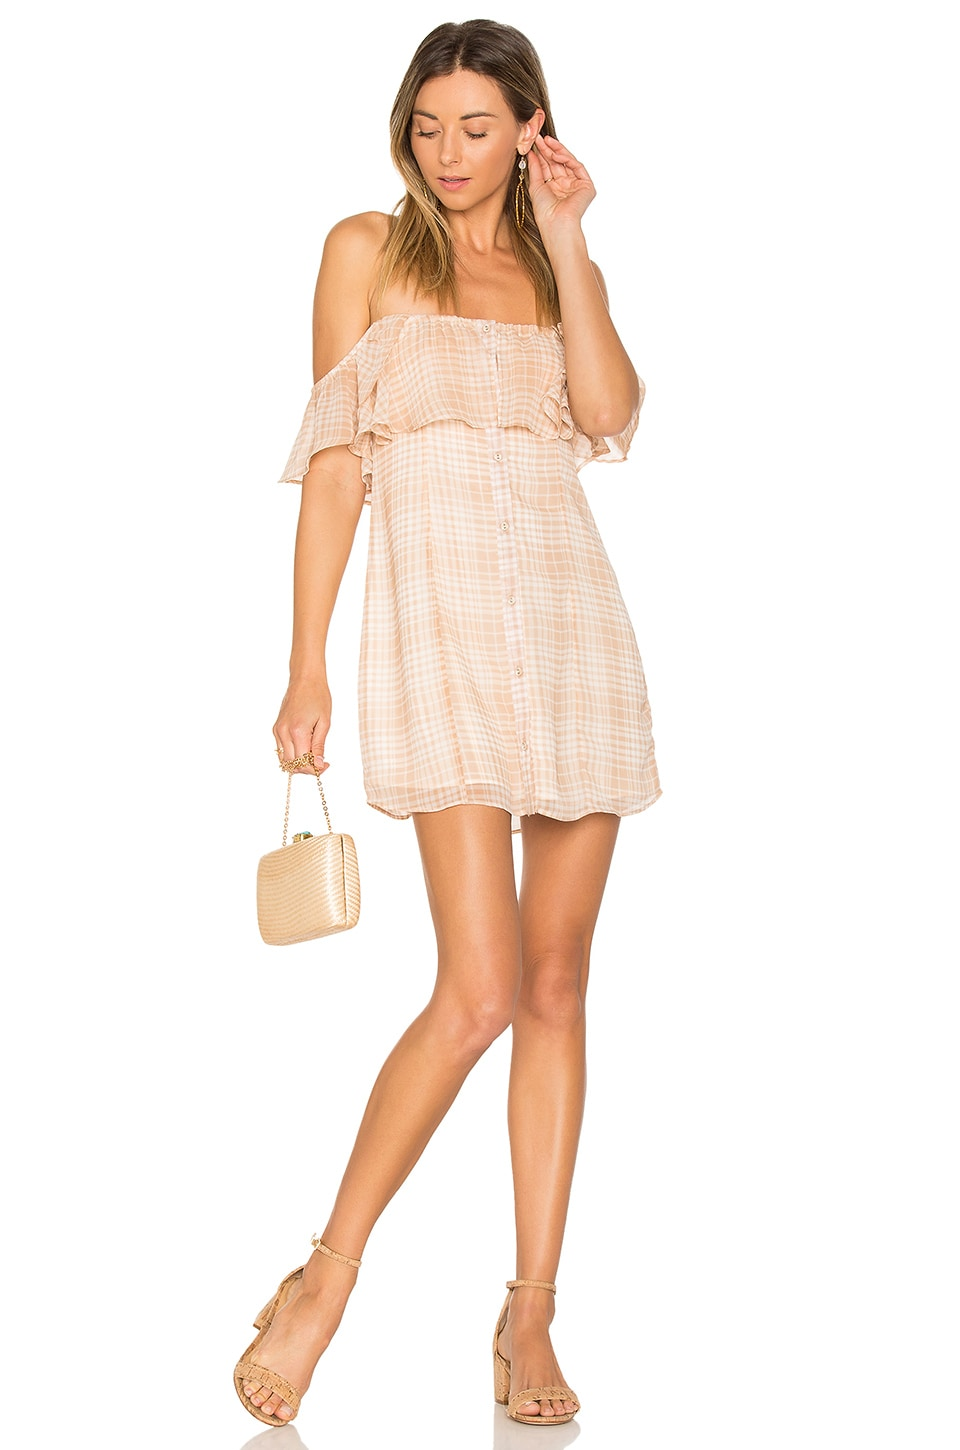 Privacy Please Norval Dress in Tan